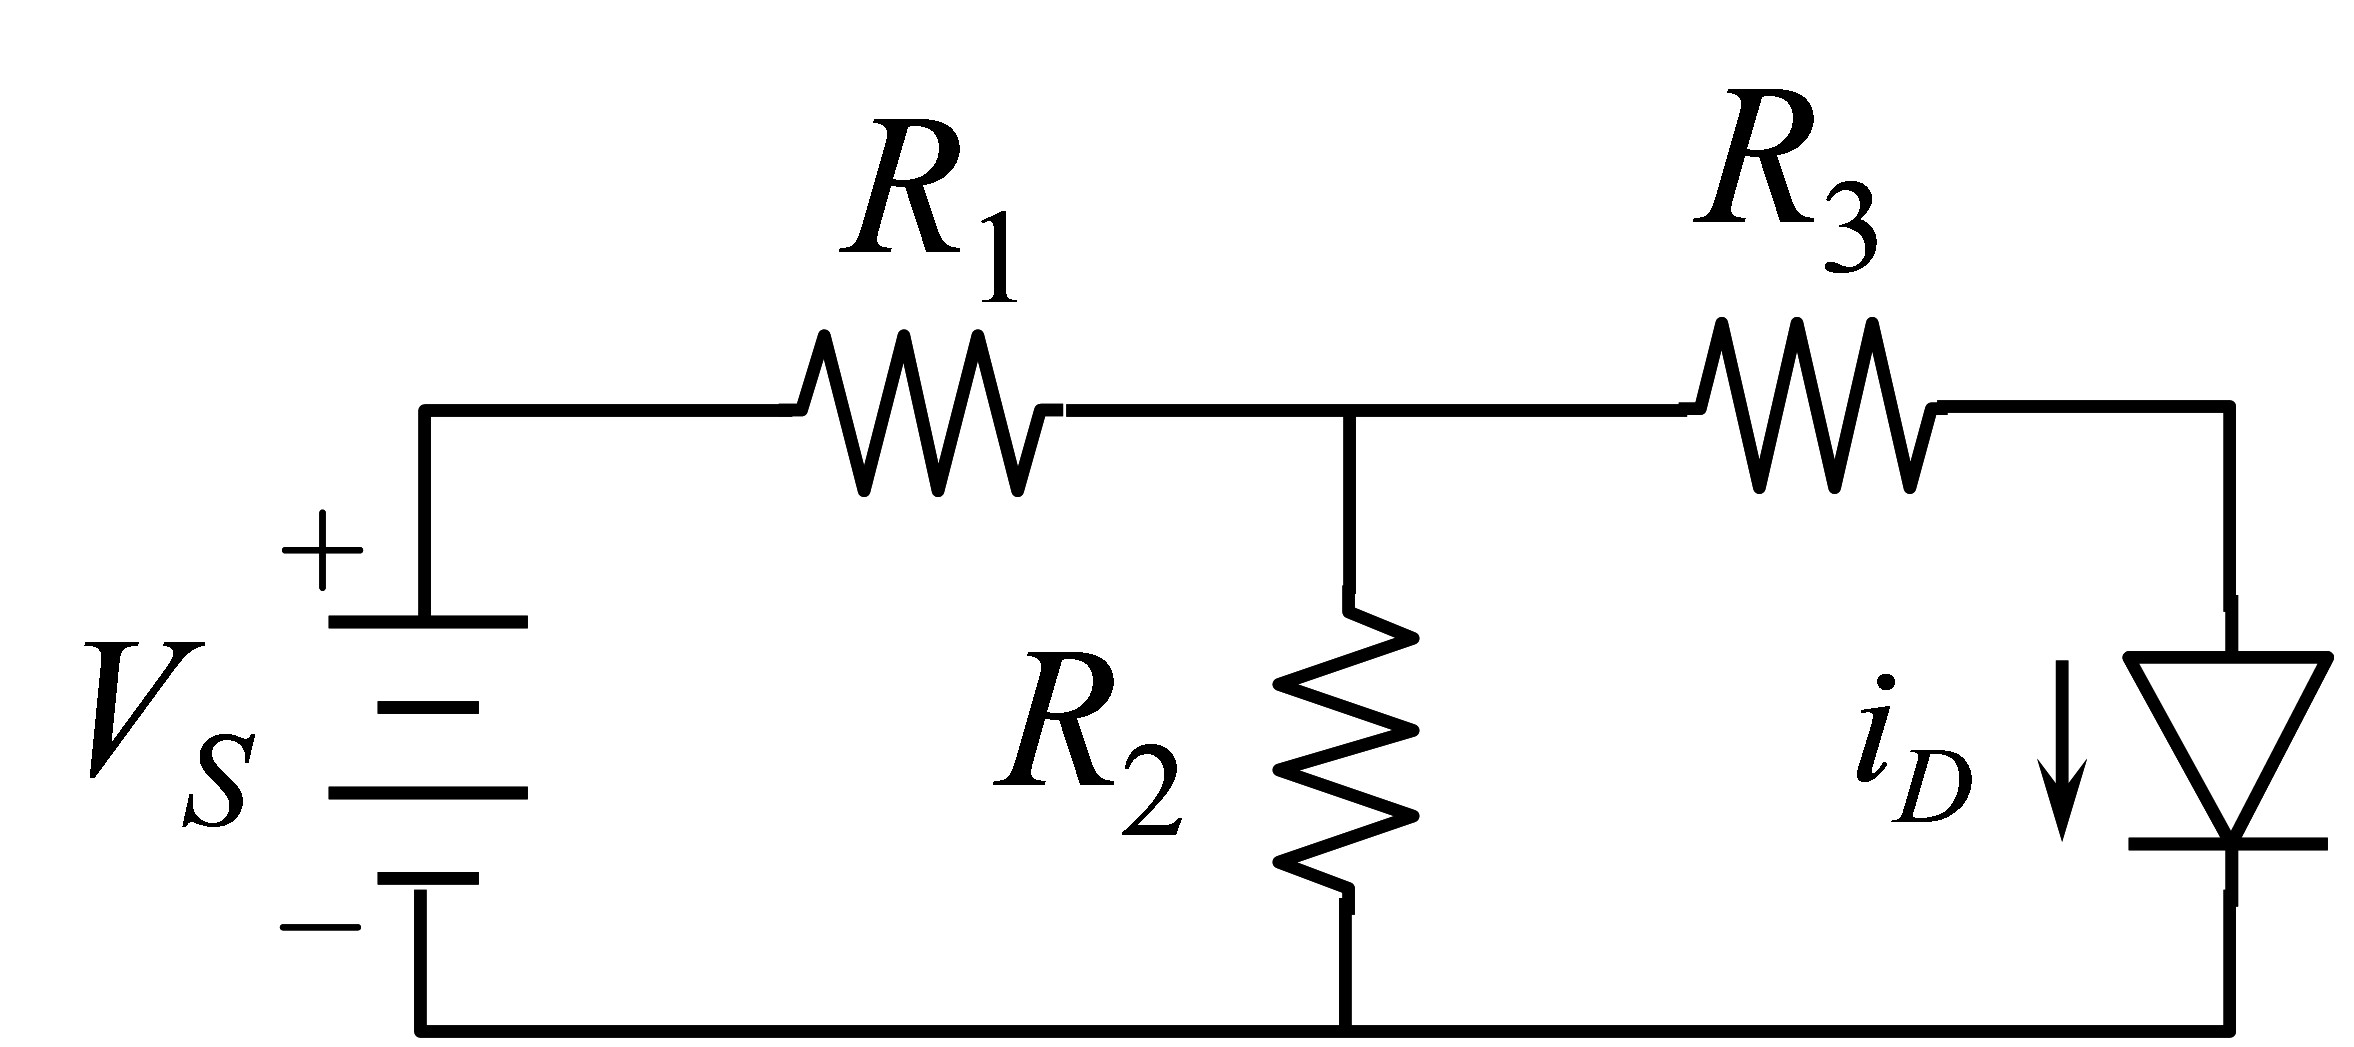 Ece323 Basic Electronic Circuits Assignment 11